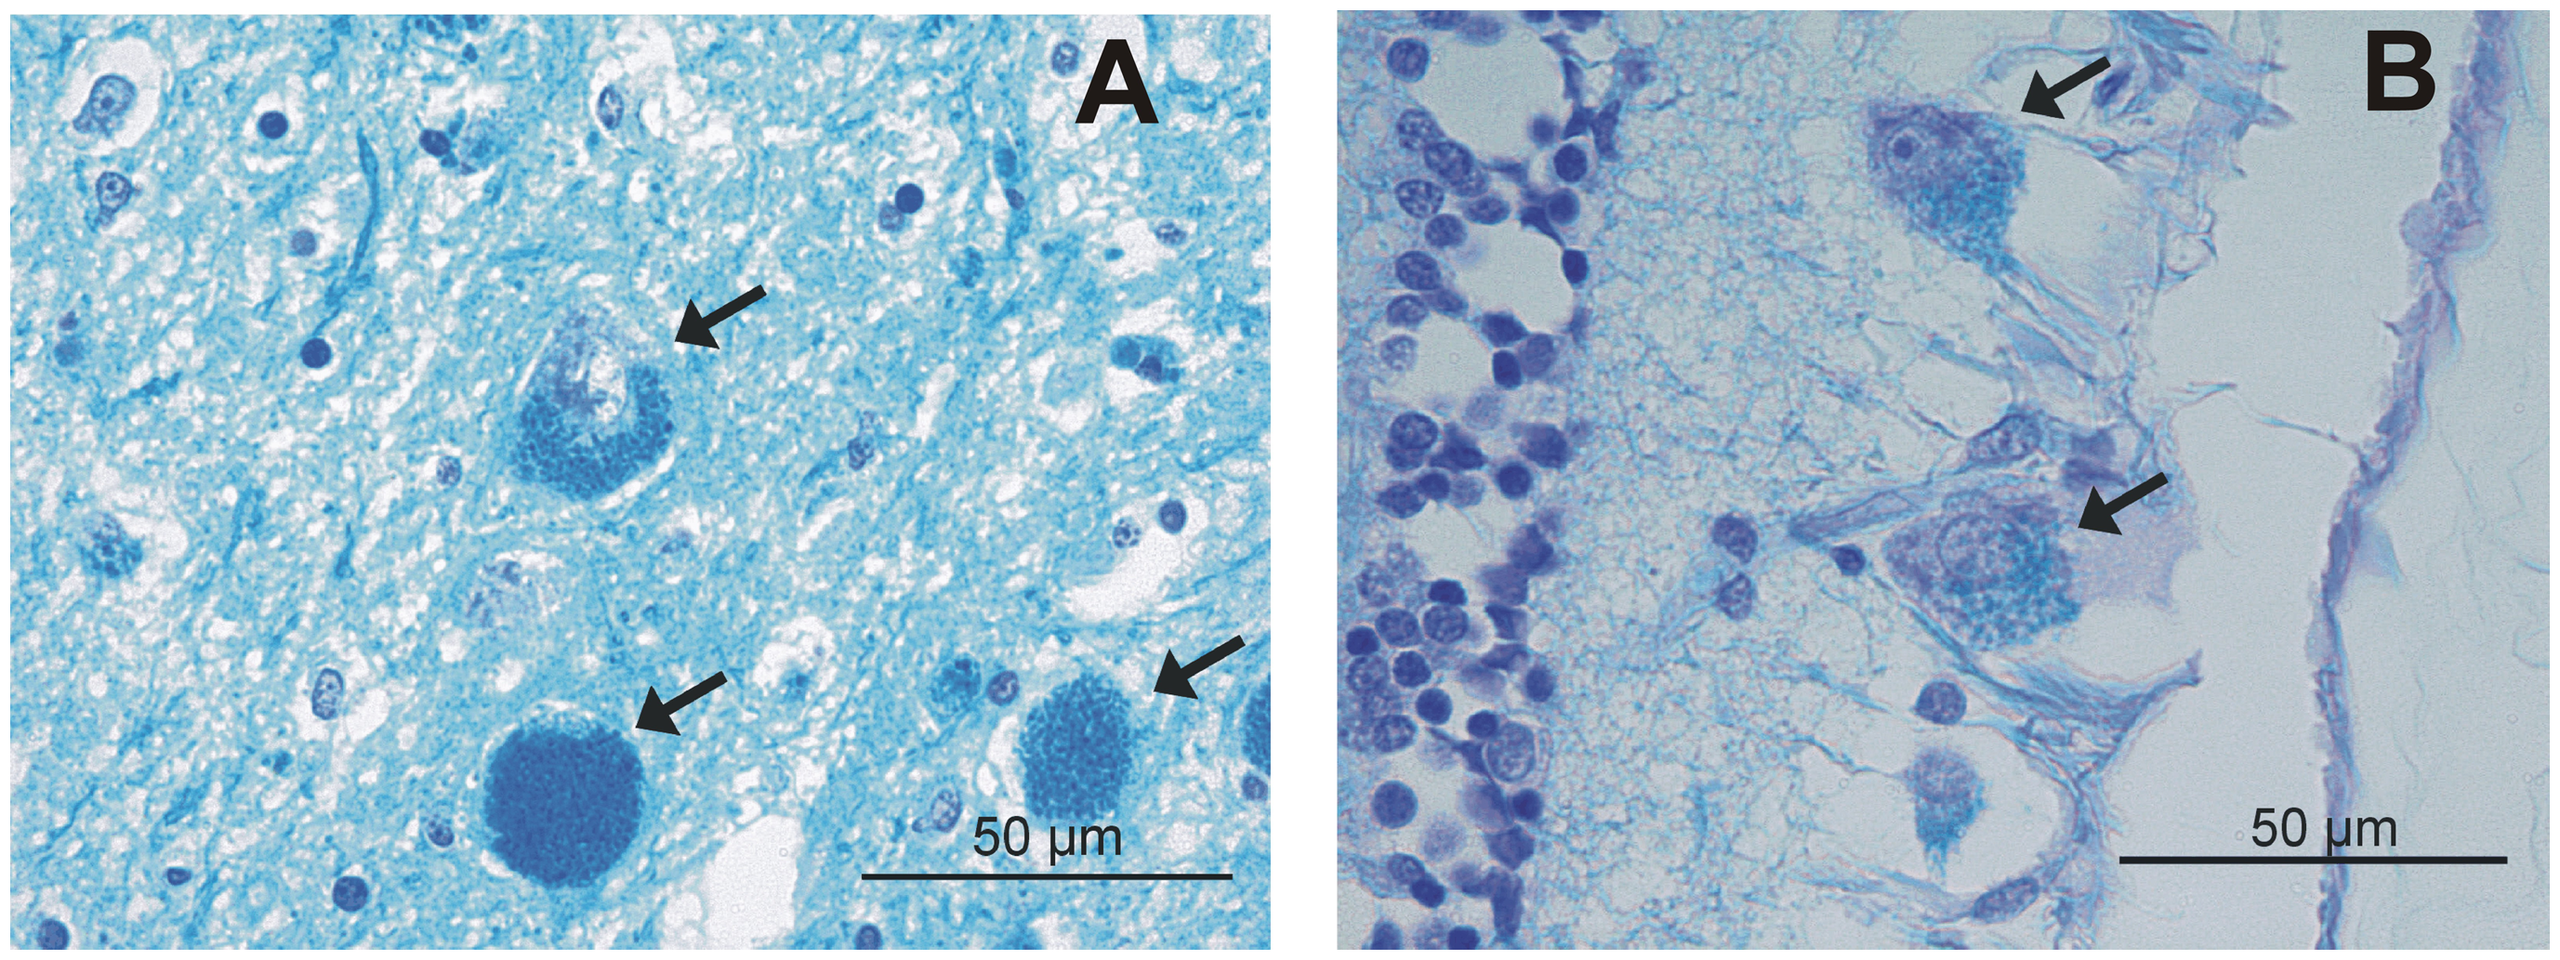 Luxol fast blue (LFB) staining.